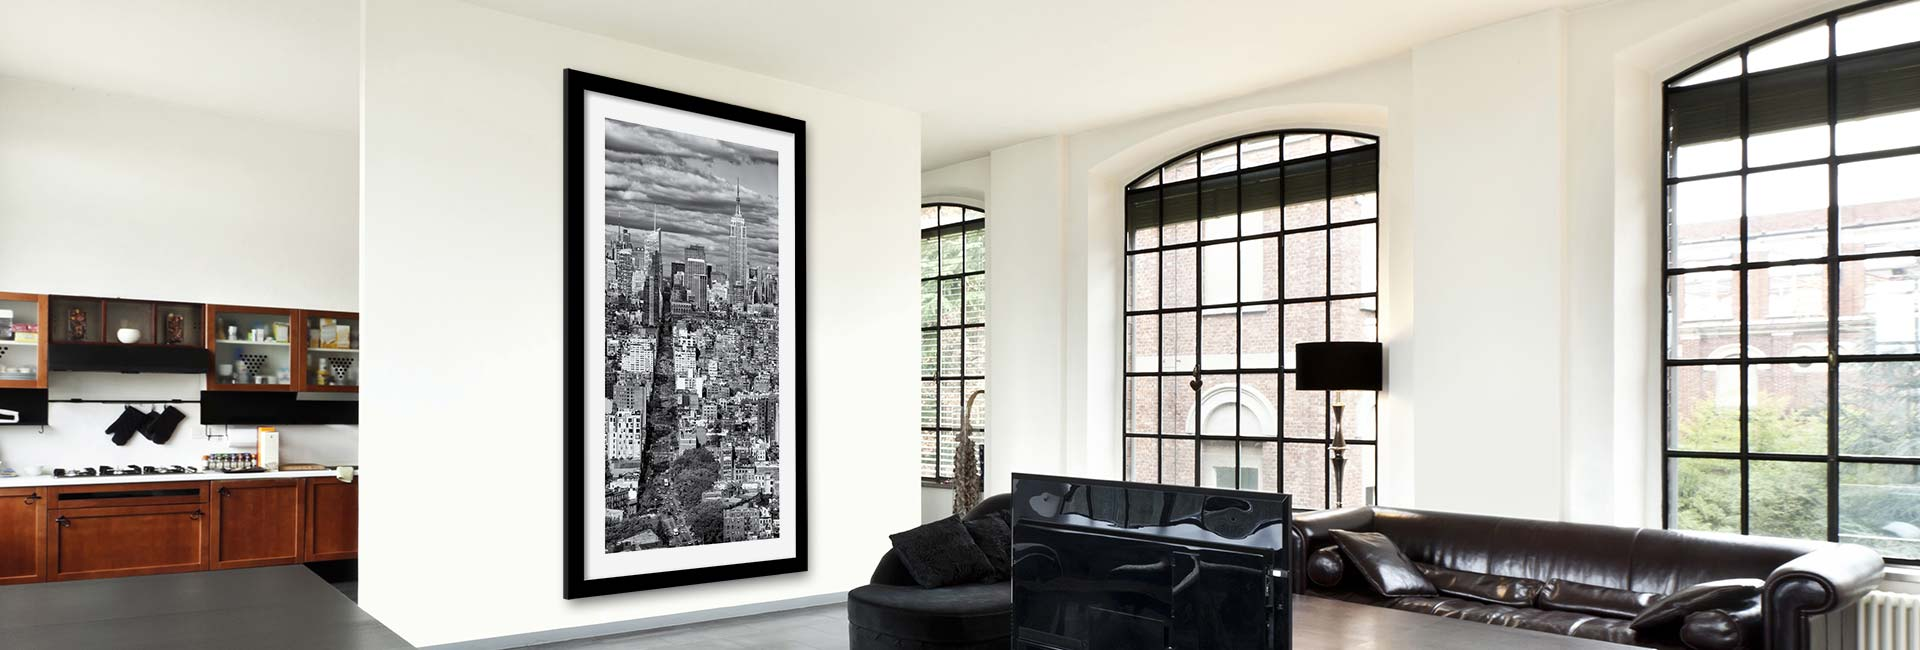 Black and white fine art prints – large-scale gallery prints of New York City by Andrew Prokos